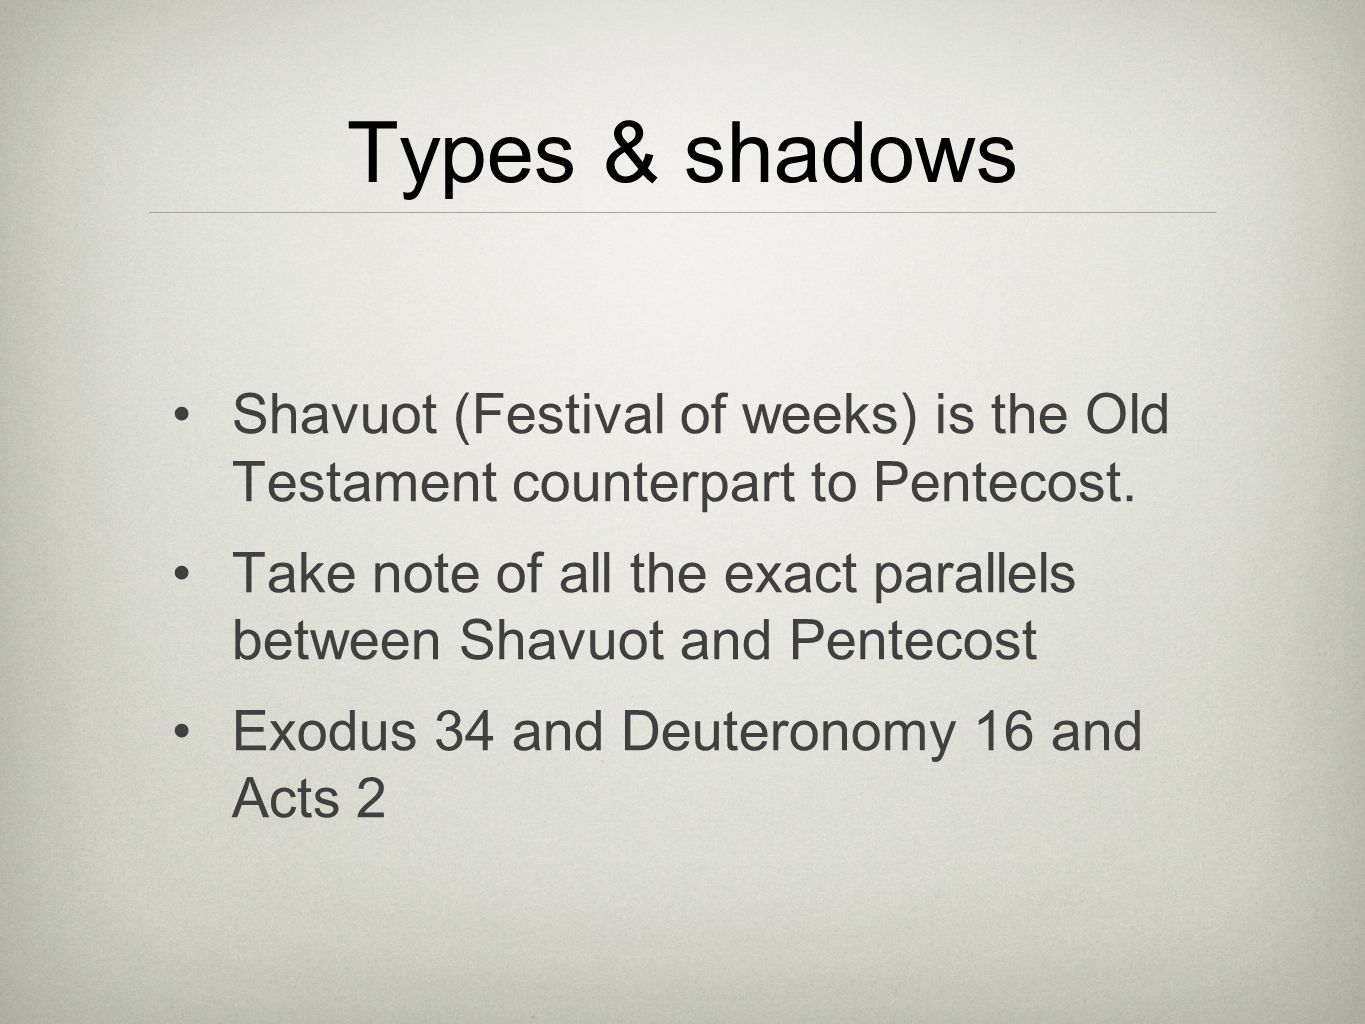 Types & shadows Shavuot (Festival of weeks) is the Old Testament counterpart to Pentecost.